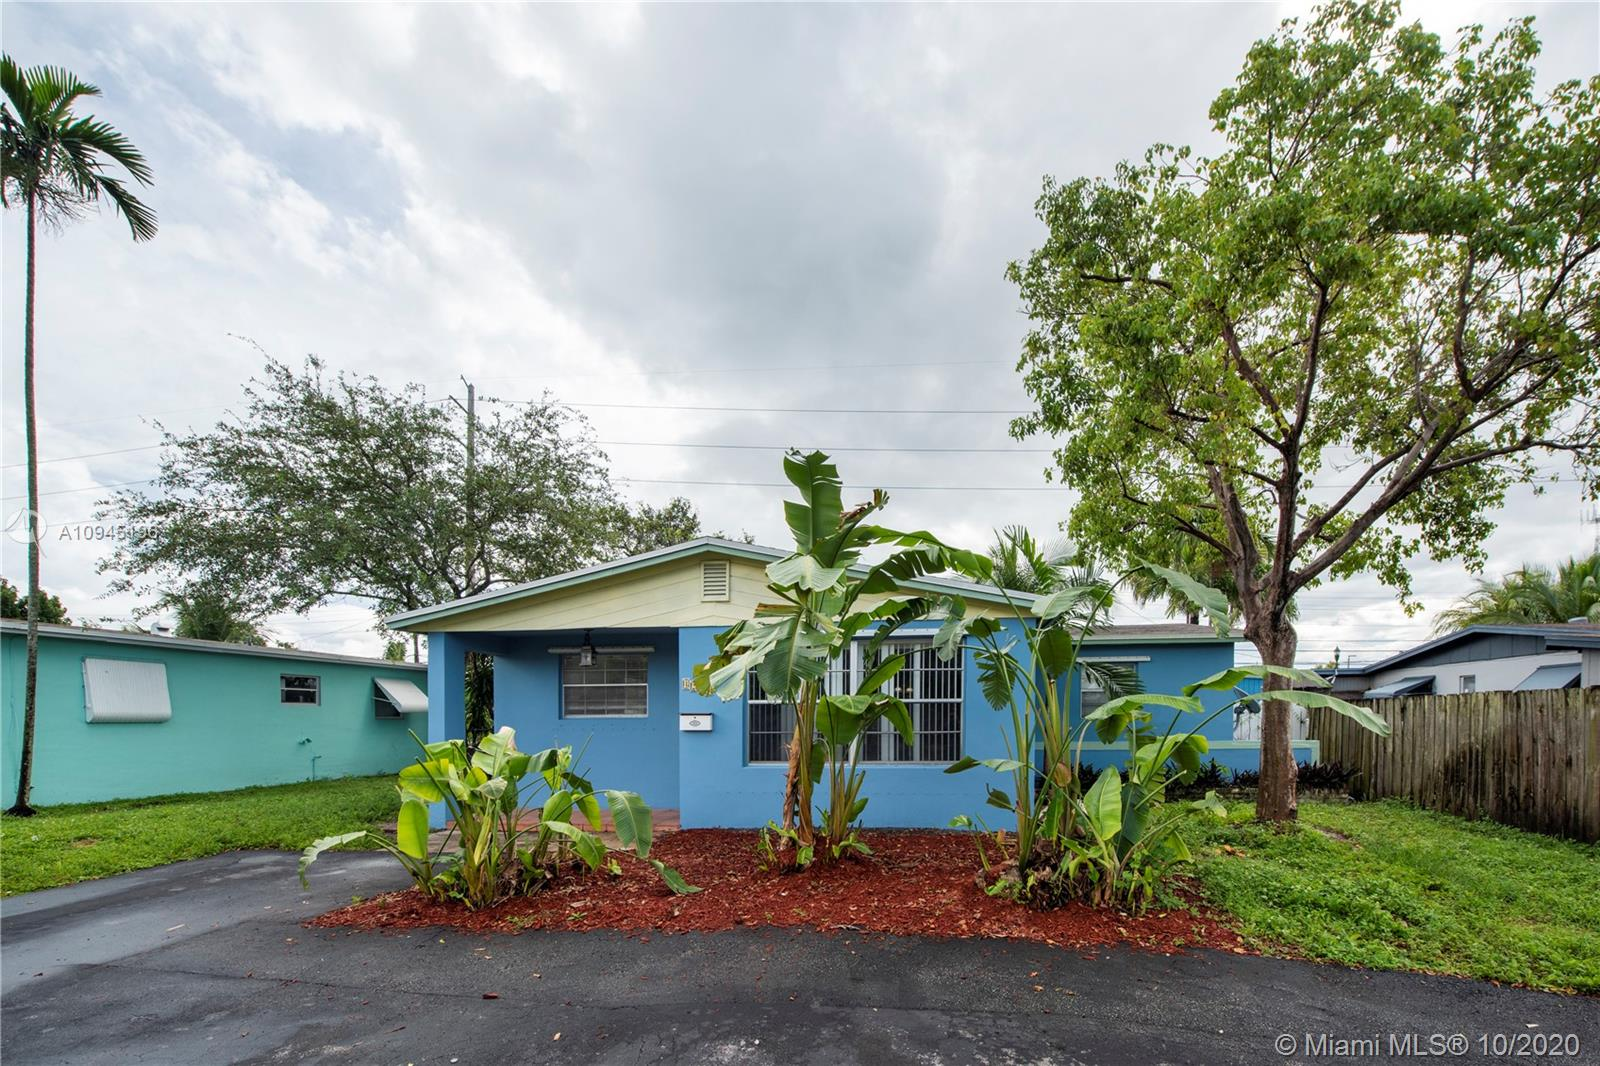 Charming home on a quiet residential street in Oakland Park.  Features a circular driveway, 3 bedrooms and 2 bathrooms, central A/C, and inside washer/dryer.  Roof completed with a permit from 2011, updated kitchen, hurricane panels, and double impact french patio doors.  The oversized fenced backyard has plenty of room for a pool and offers the perfect space to entertain underneath a 12x12 pergola. The attached storage shed in the back of the home offers additional storage and organization for backyard essentials.  This home is priced well and ready to sell.  Existing tenants are month to month. Enjoy having NO HOA! Great for investors or first-time home buyers.  Don't wait, hurry, show, and bring offers. 24 hours advanced notice needed to show.